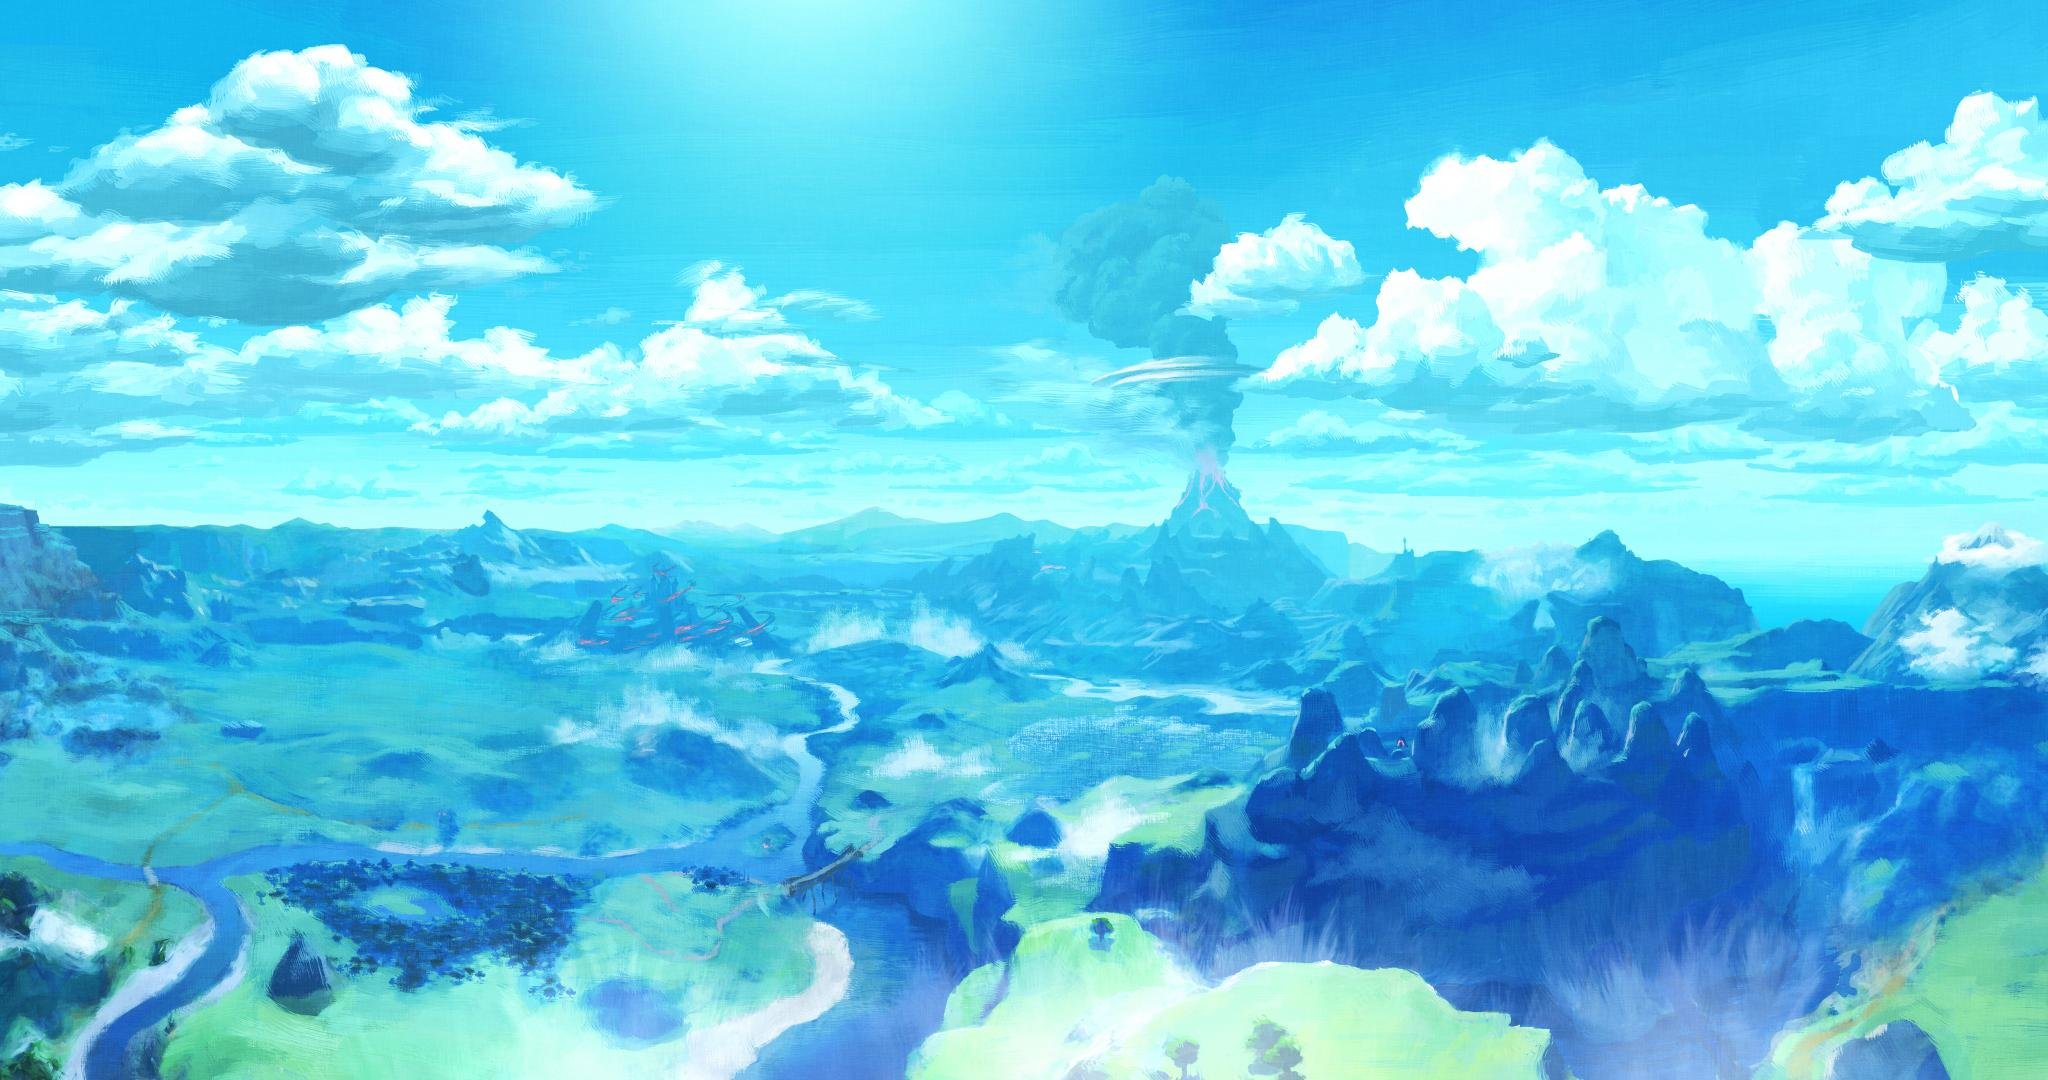 Awesome The Legend Of Zelda Breath Of The Wild Free Wallpaper Id